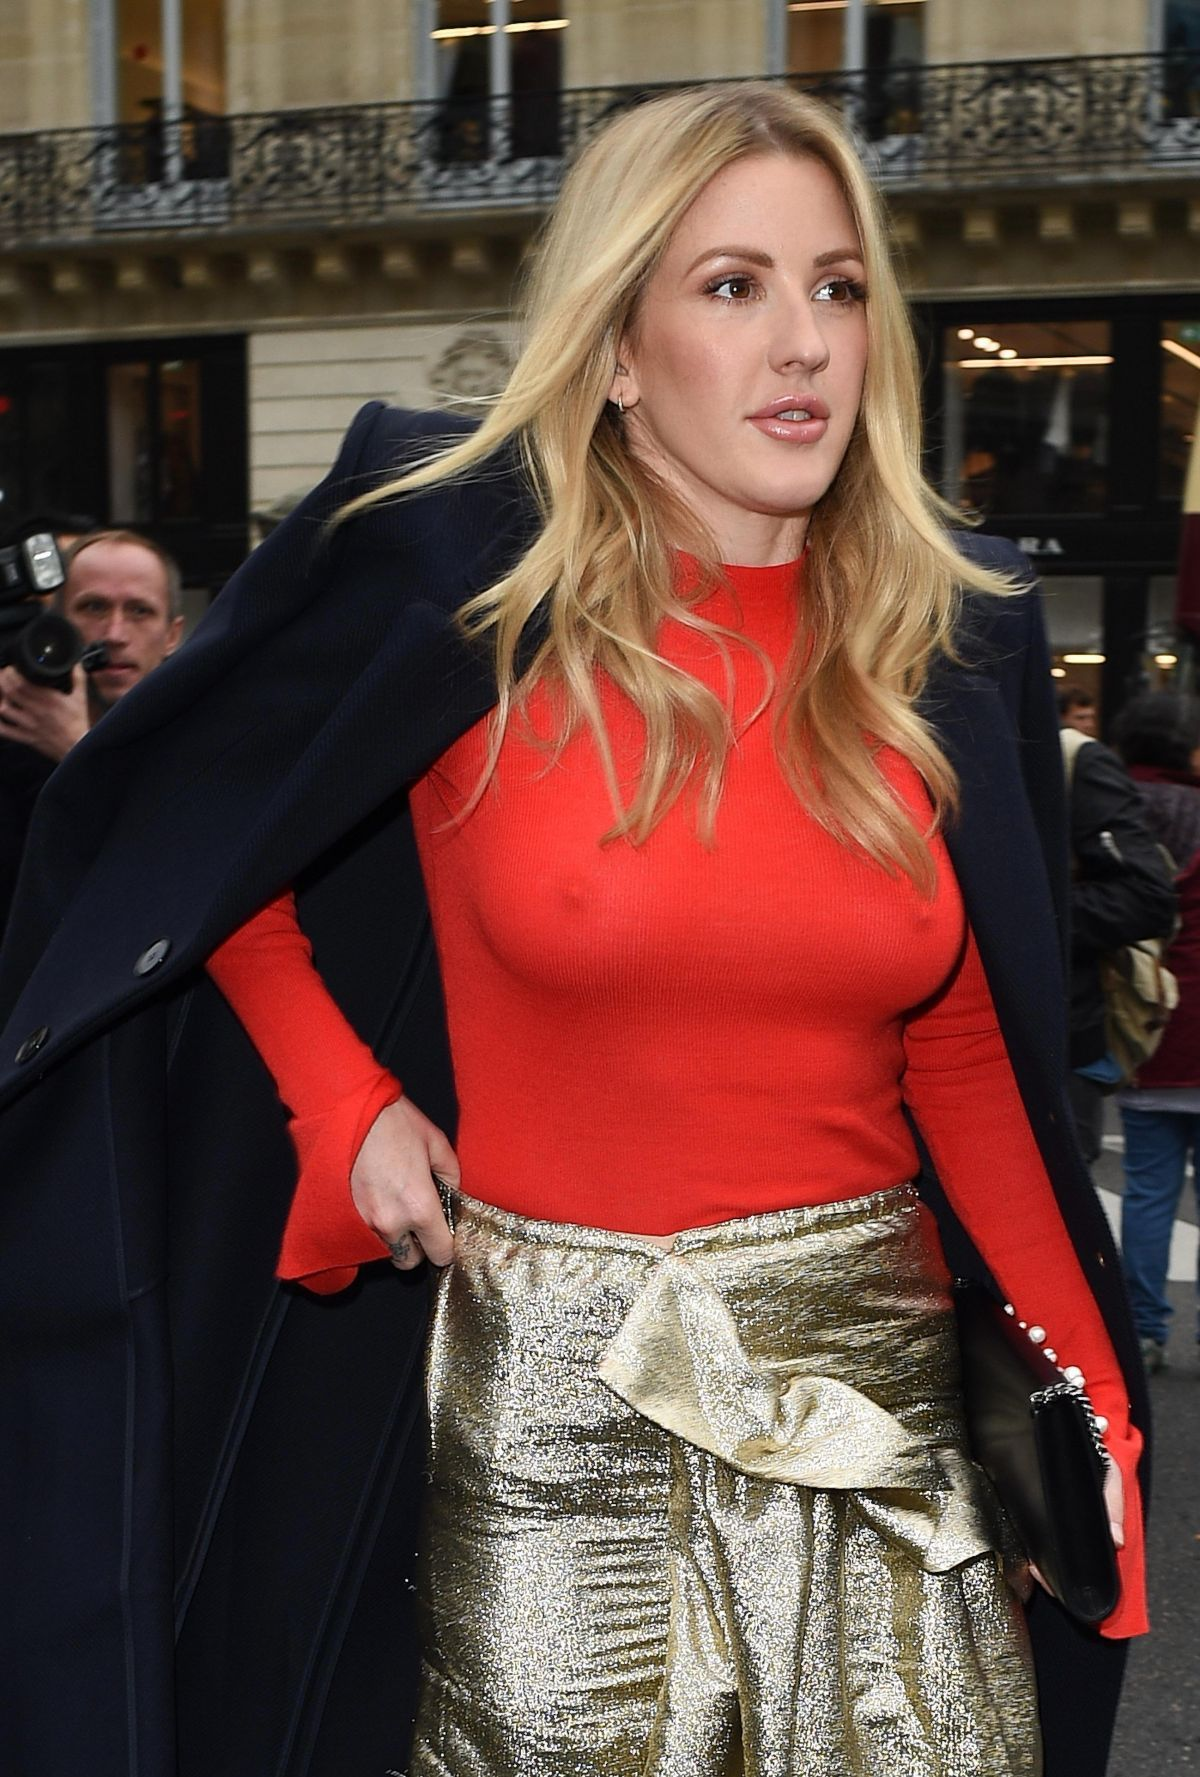 Fappening Ellie Goulding nudes (56 foto and video), Tits, Fappening, Boobs, butt 2015